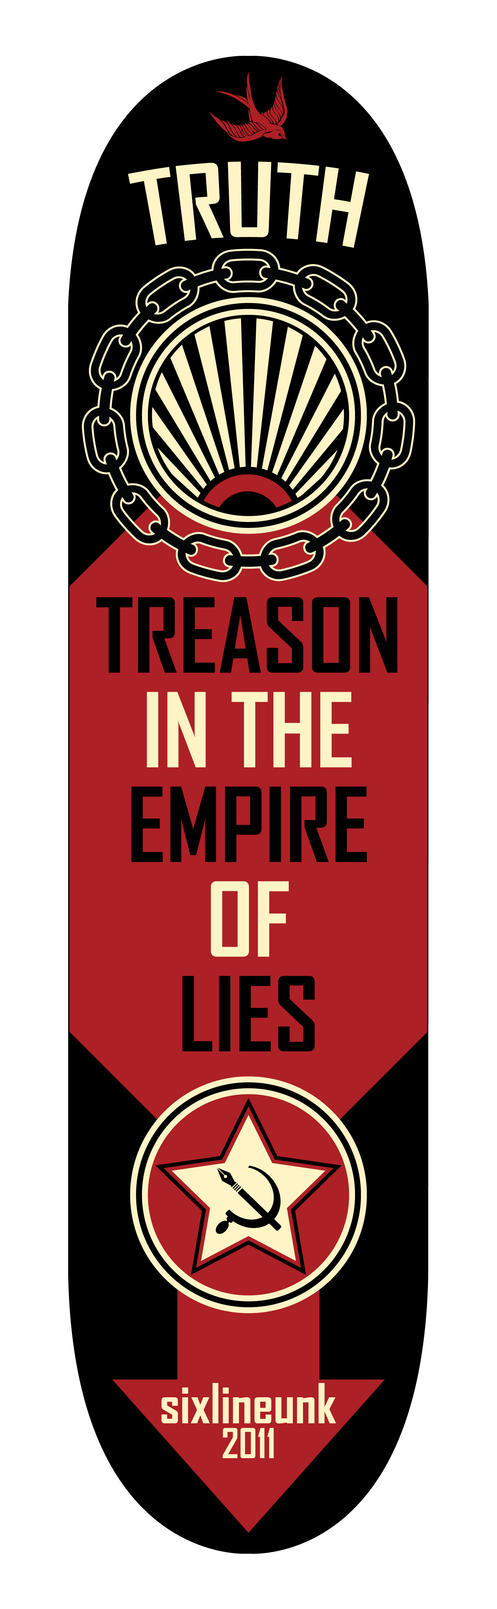 Truth is Treason by sixlinepunk